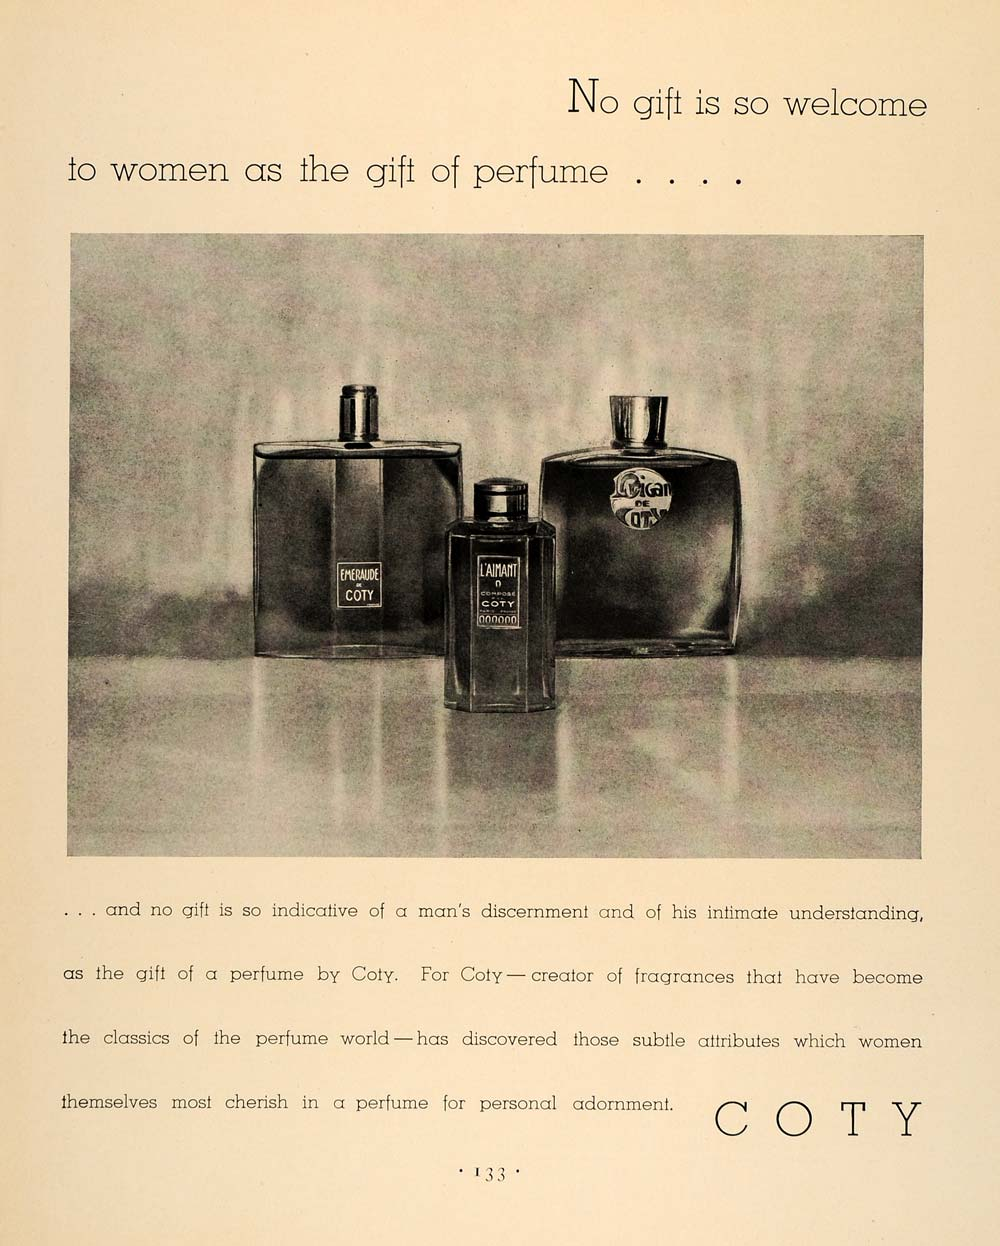 1931 Ad Coty Perfume Fragrance Bottles Parfume Gift - ORIGINAL ADVERTISING F1A